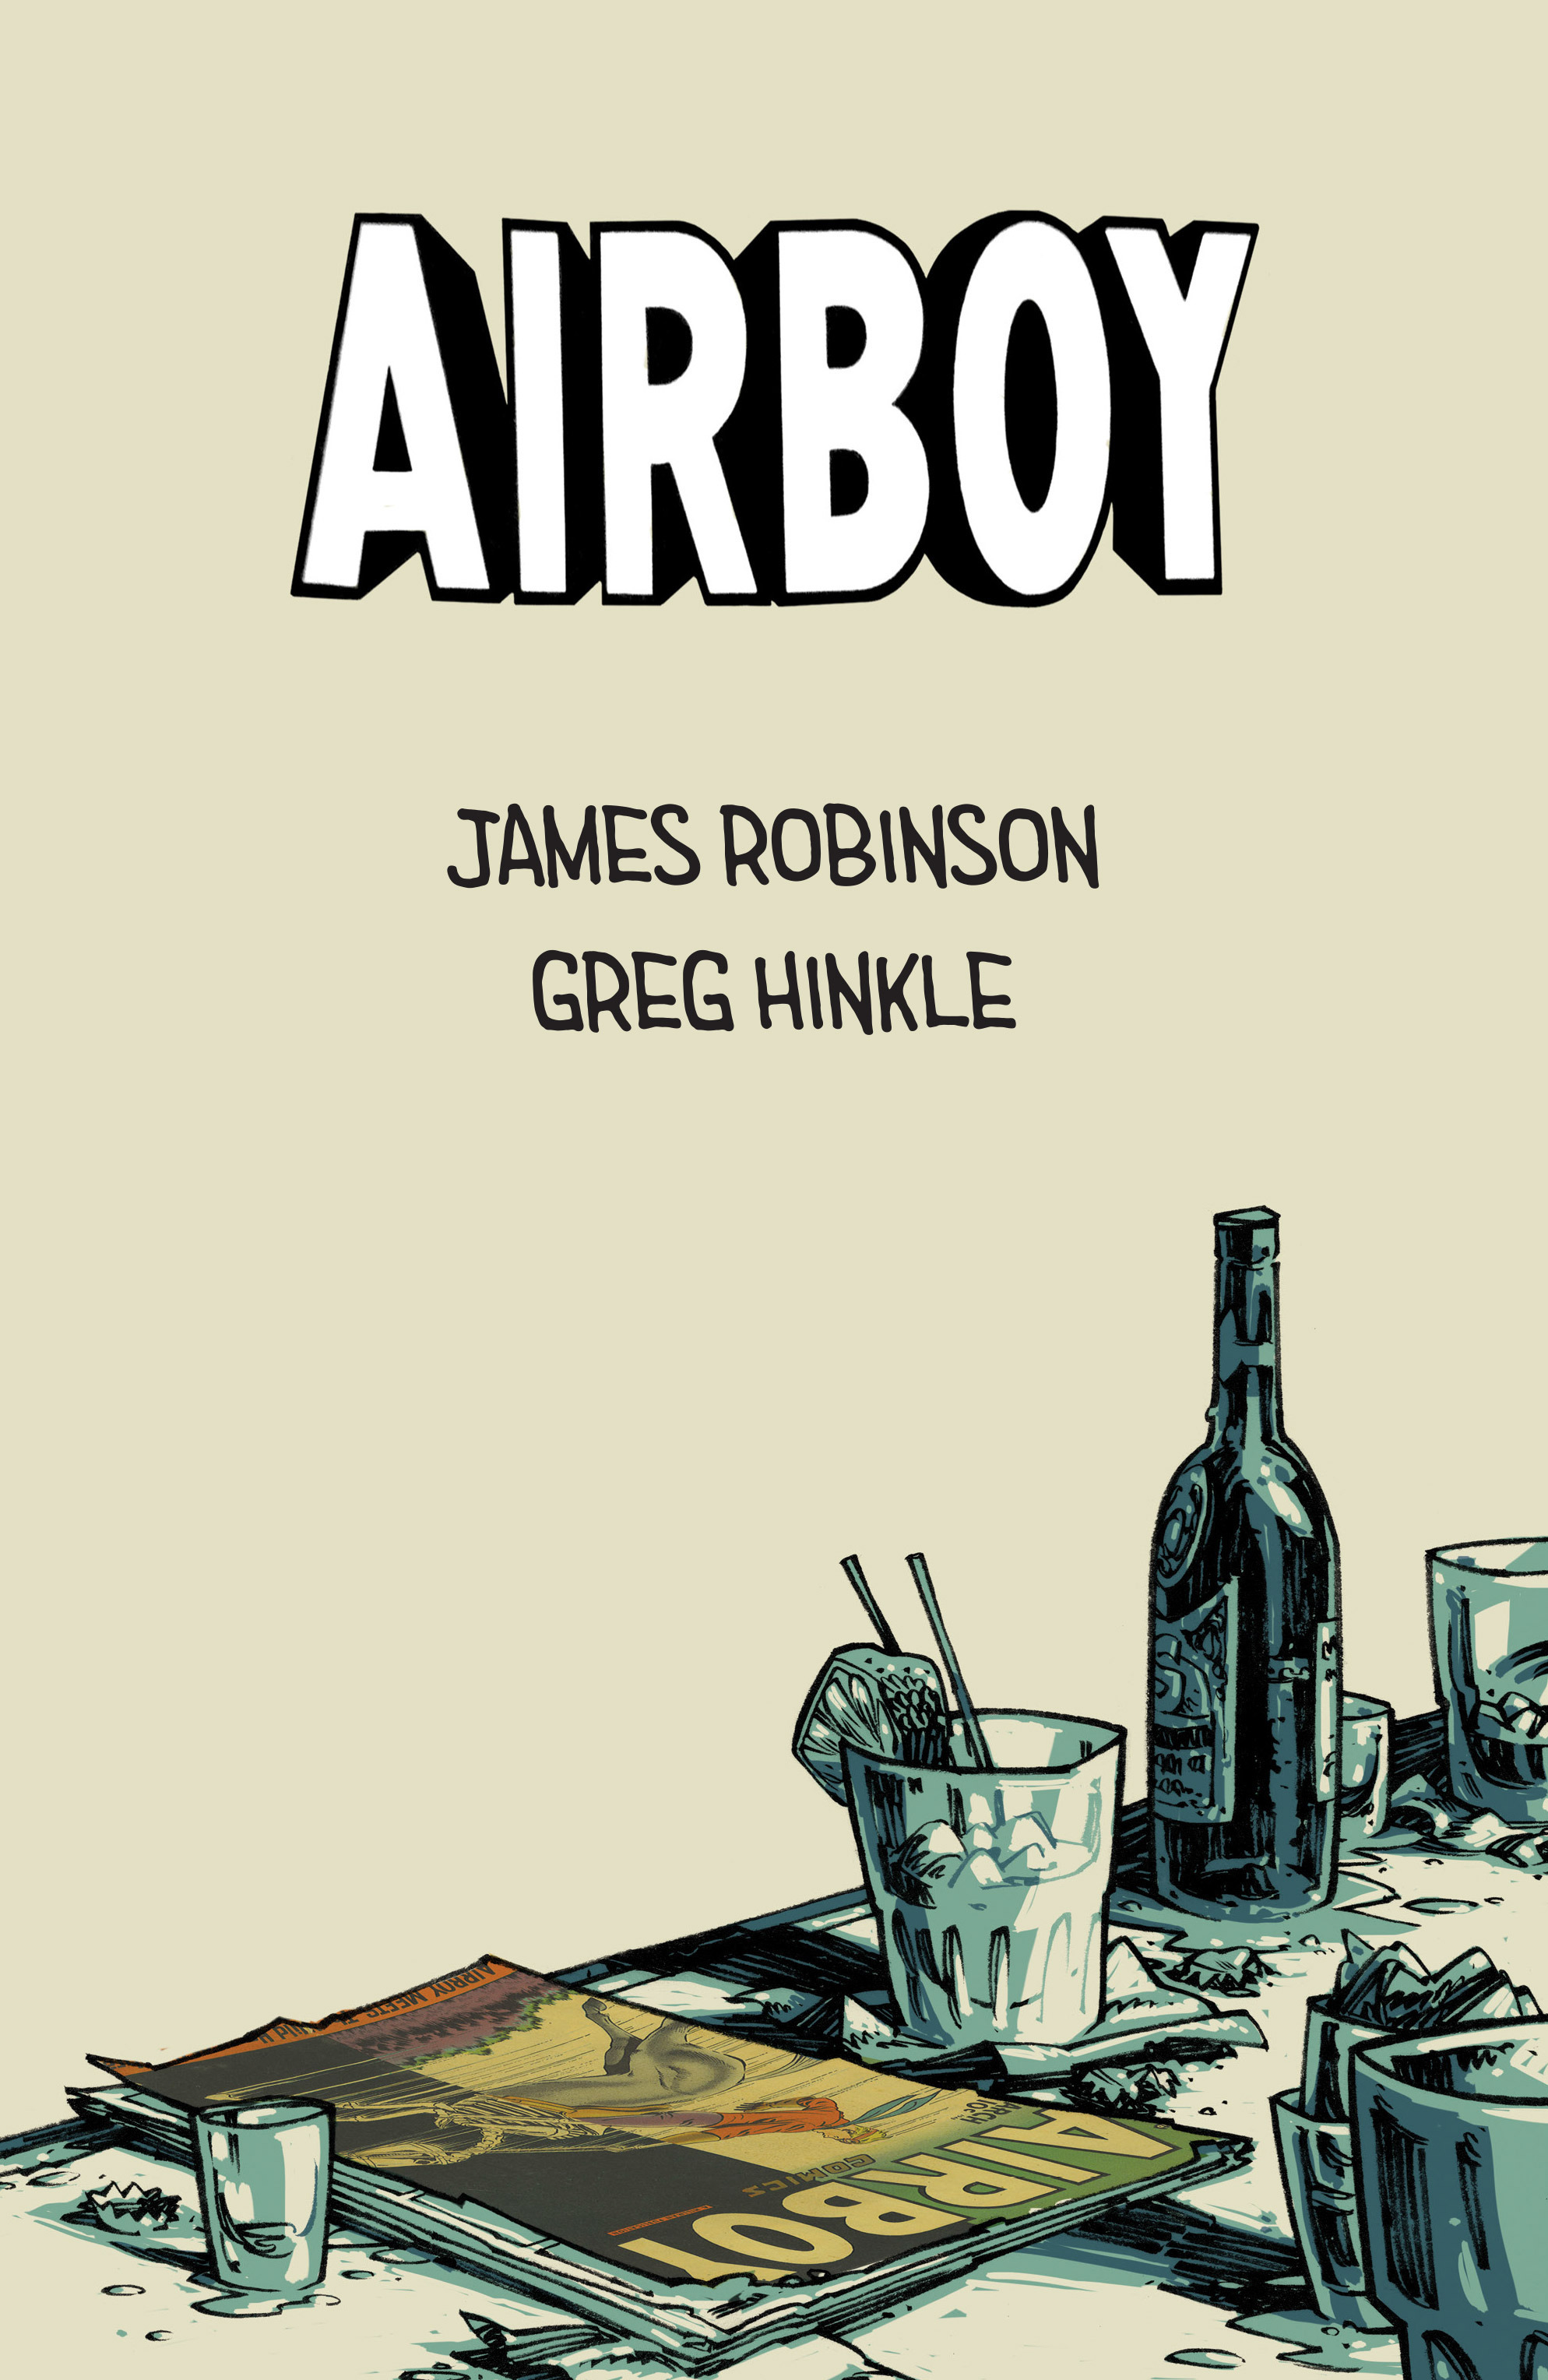 Read online Airboy comic -  Issue #1 - 3